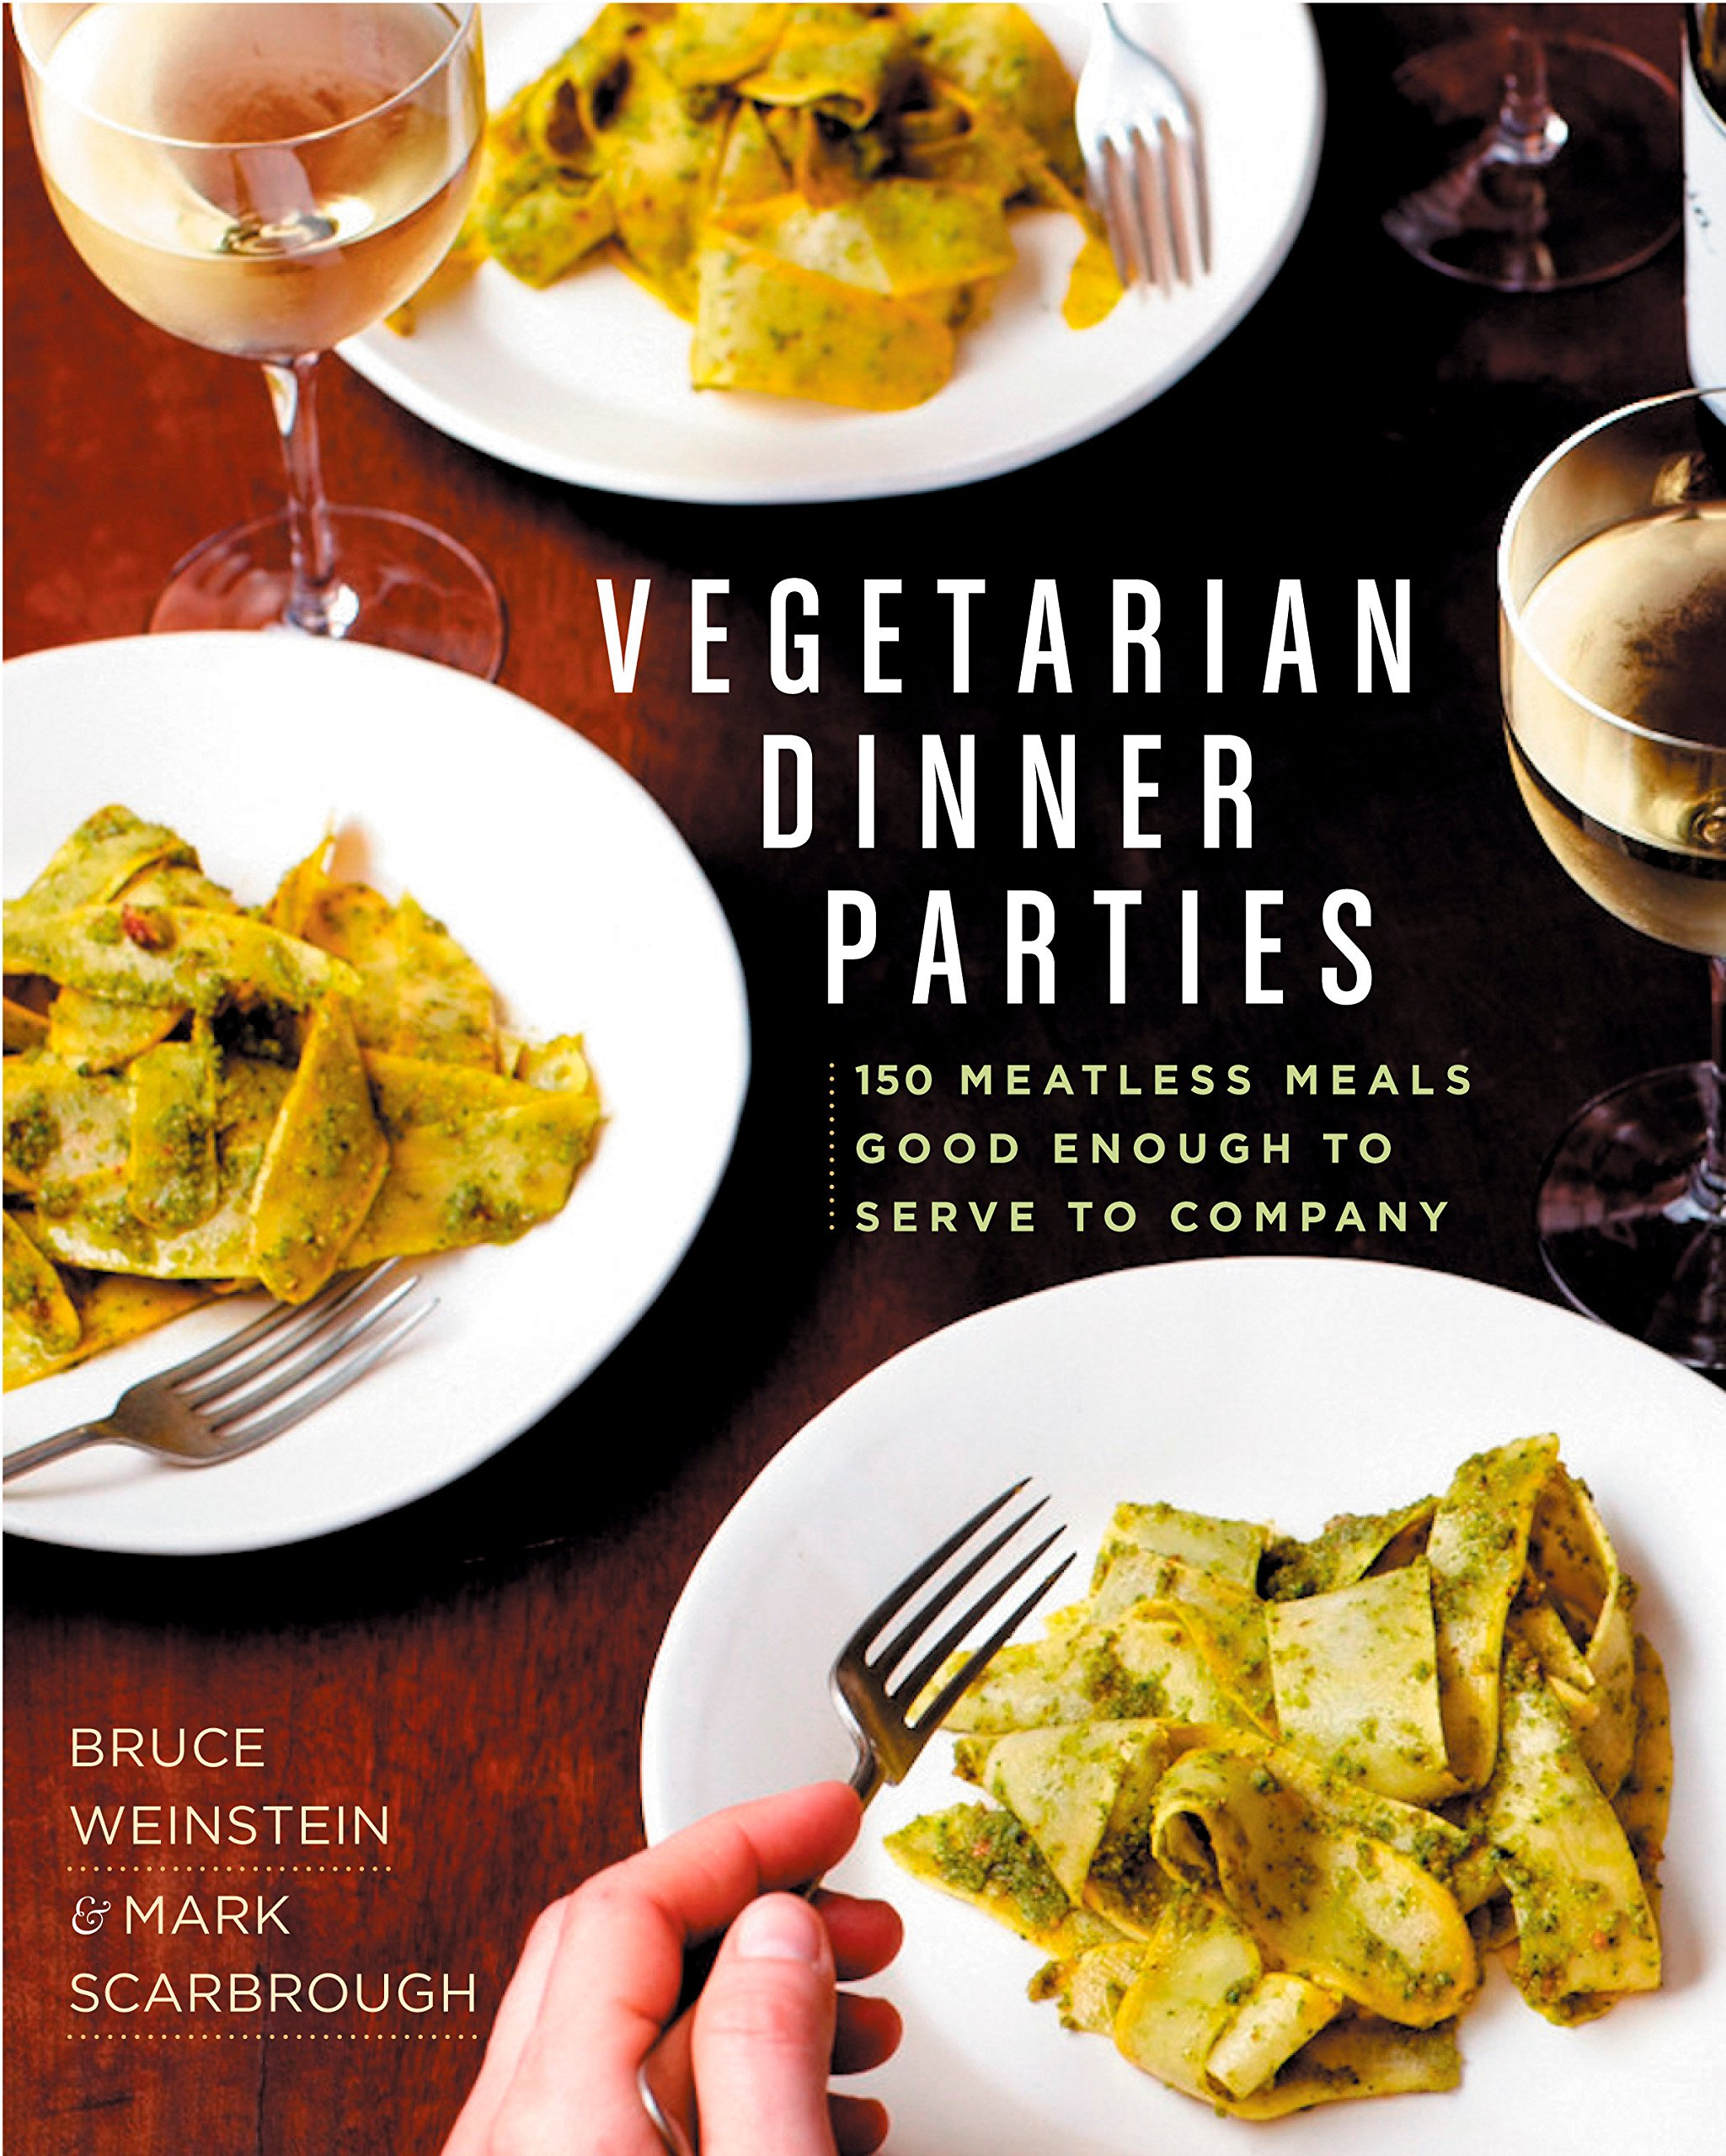 Vegetarian Dinner Parties 150 Meatless Meals Good Enough To Serve